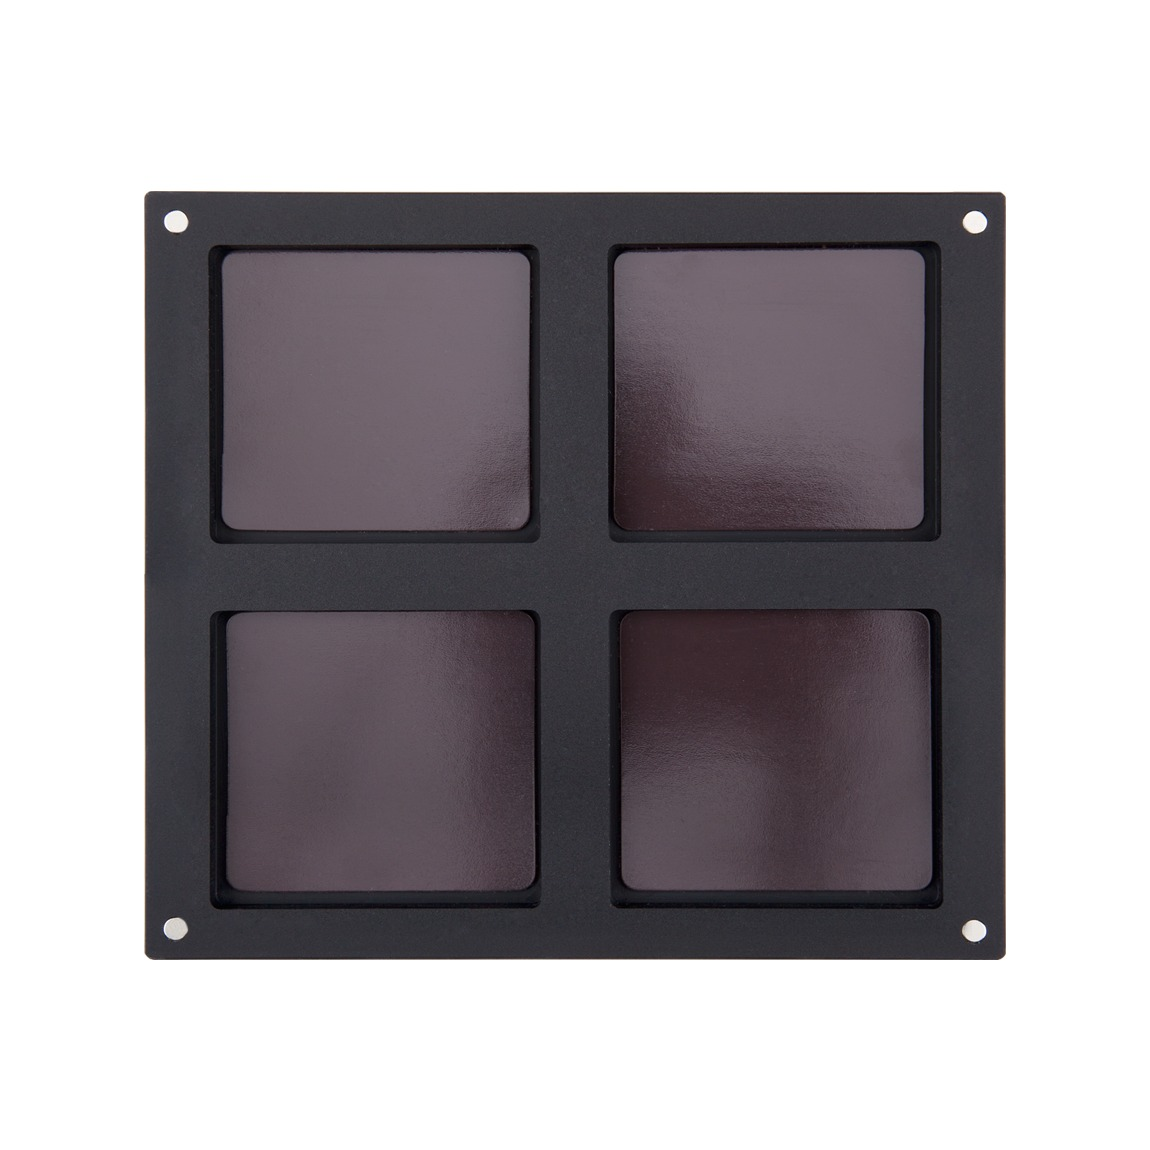 Inglot Cosmetics Freedom System Palette 4 Face Powder product swatch.